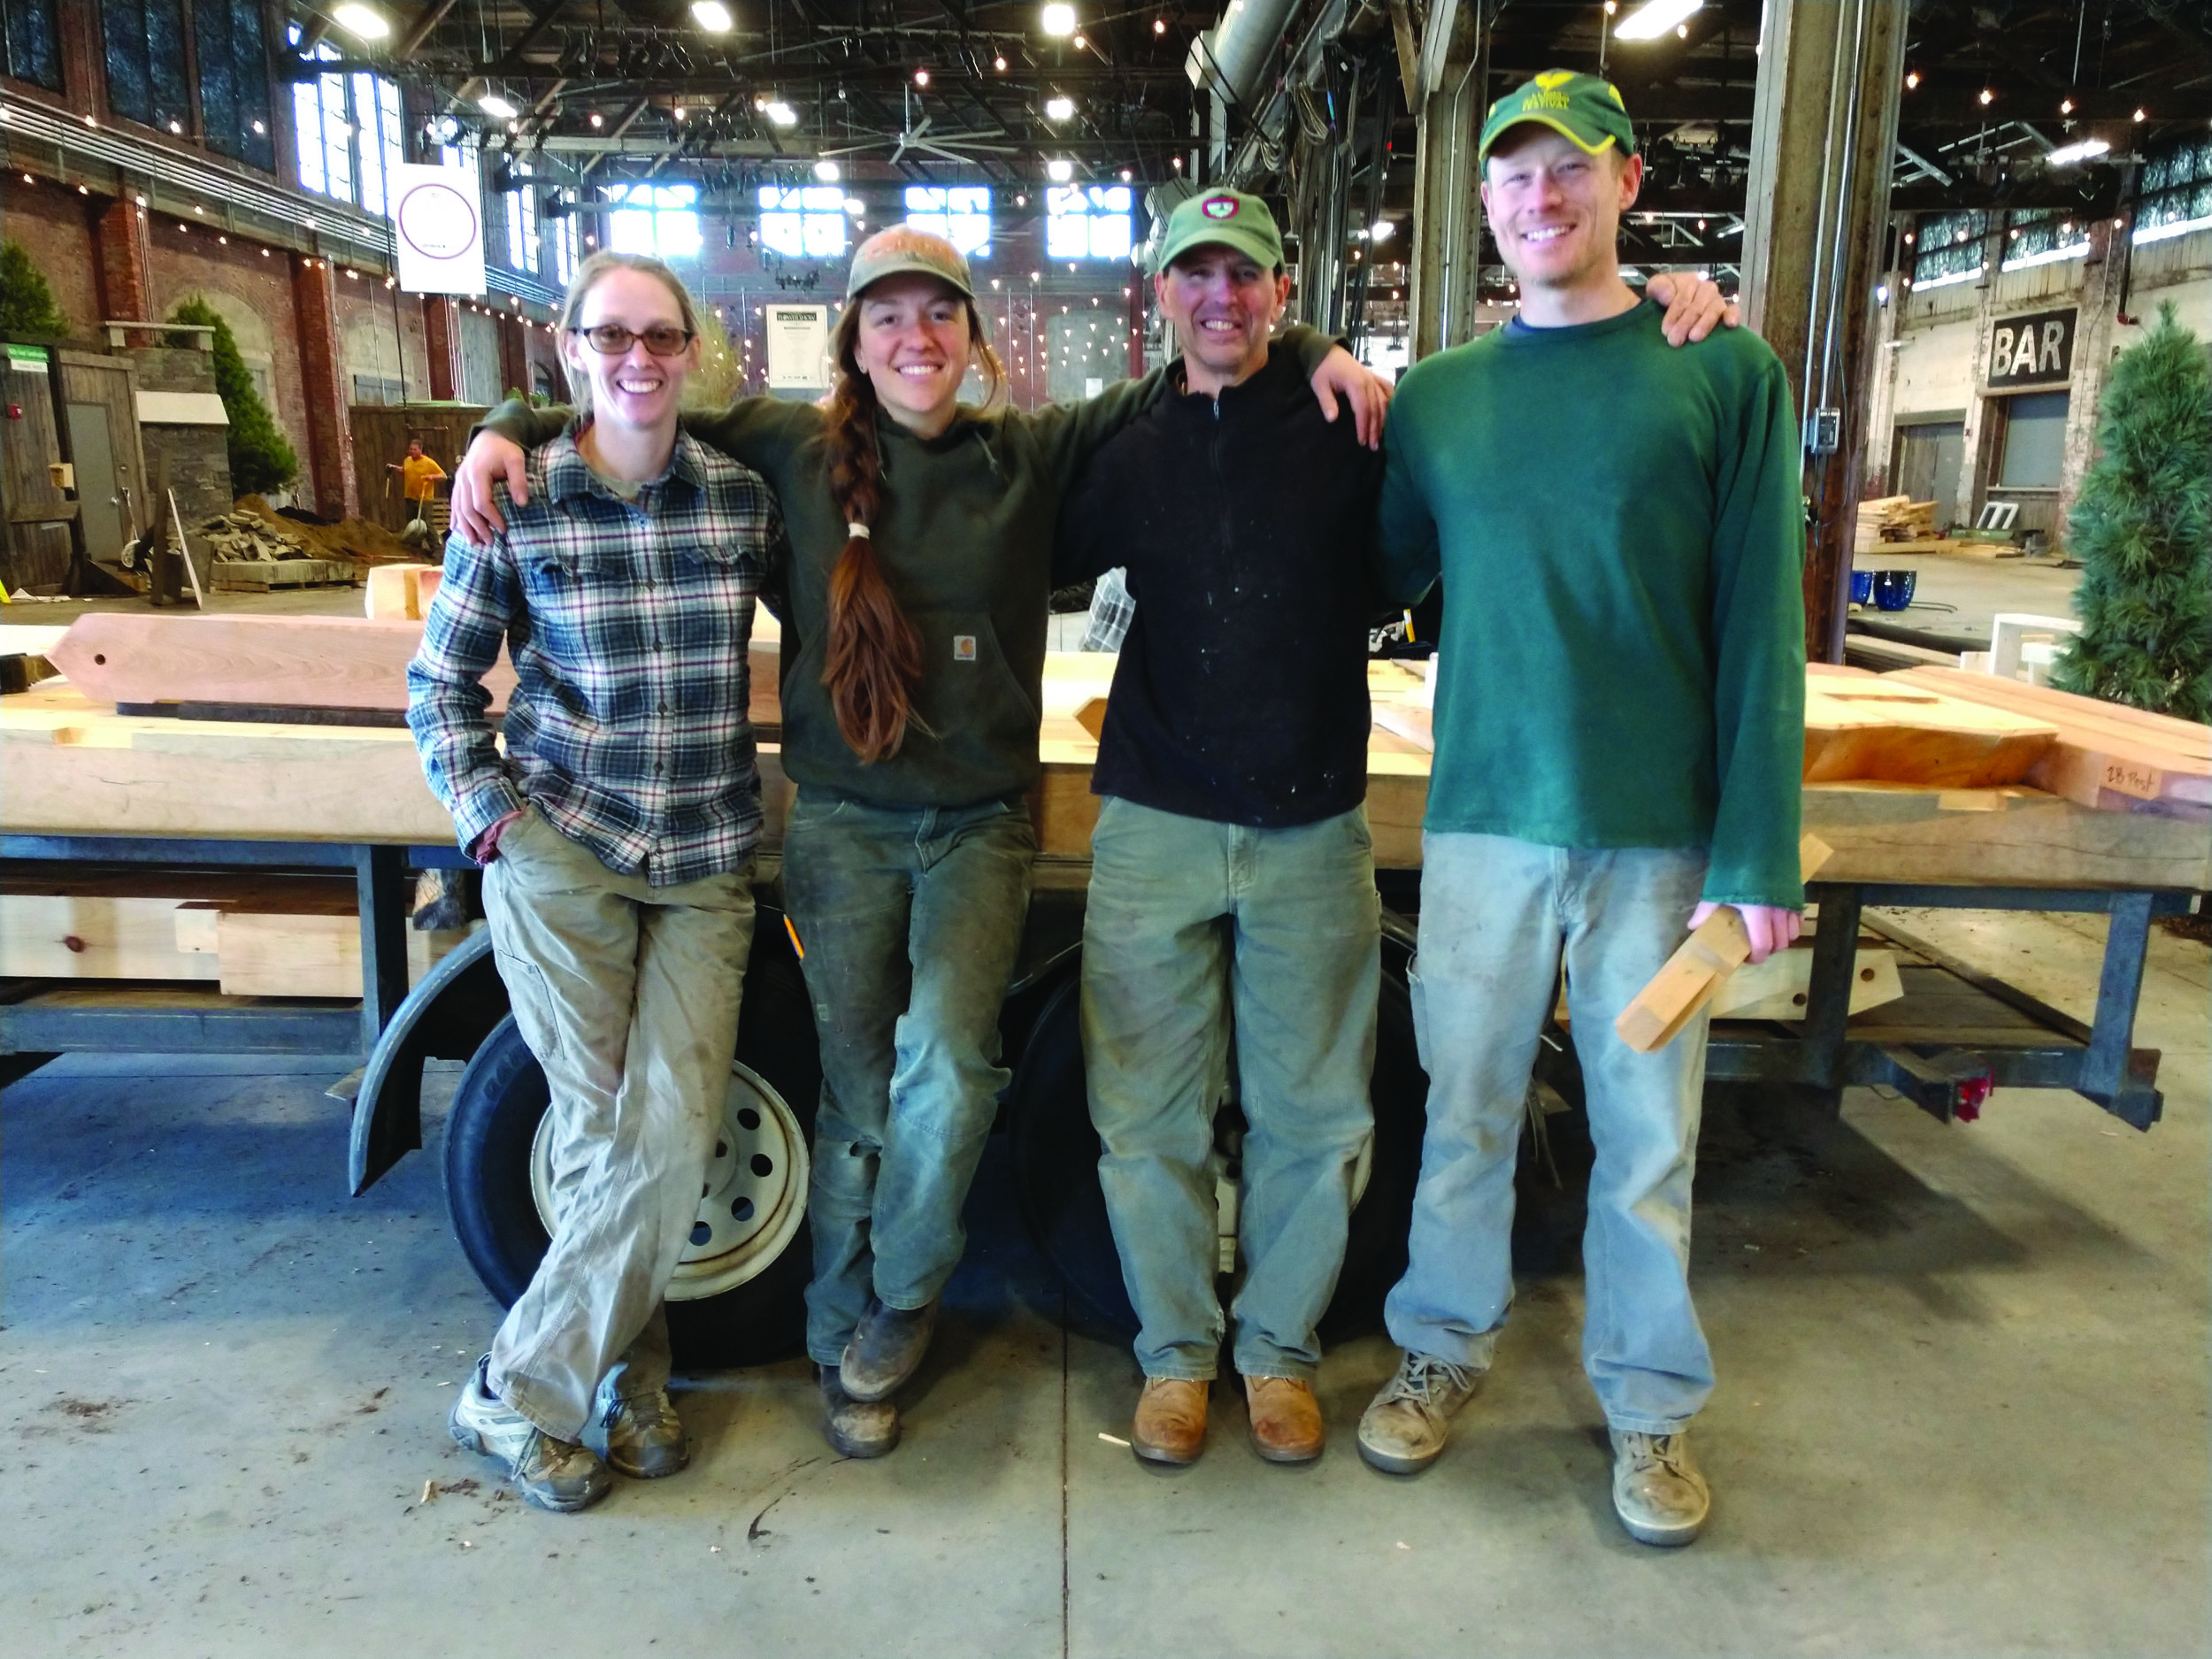 The team at Maine Heritage Timber Frames. From left to right: Kelly Mann, Ariel Burns, Ken Vorhees, and Mark Casad.  Photo courtesy of Maine Heritage Timber Frames